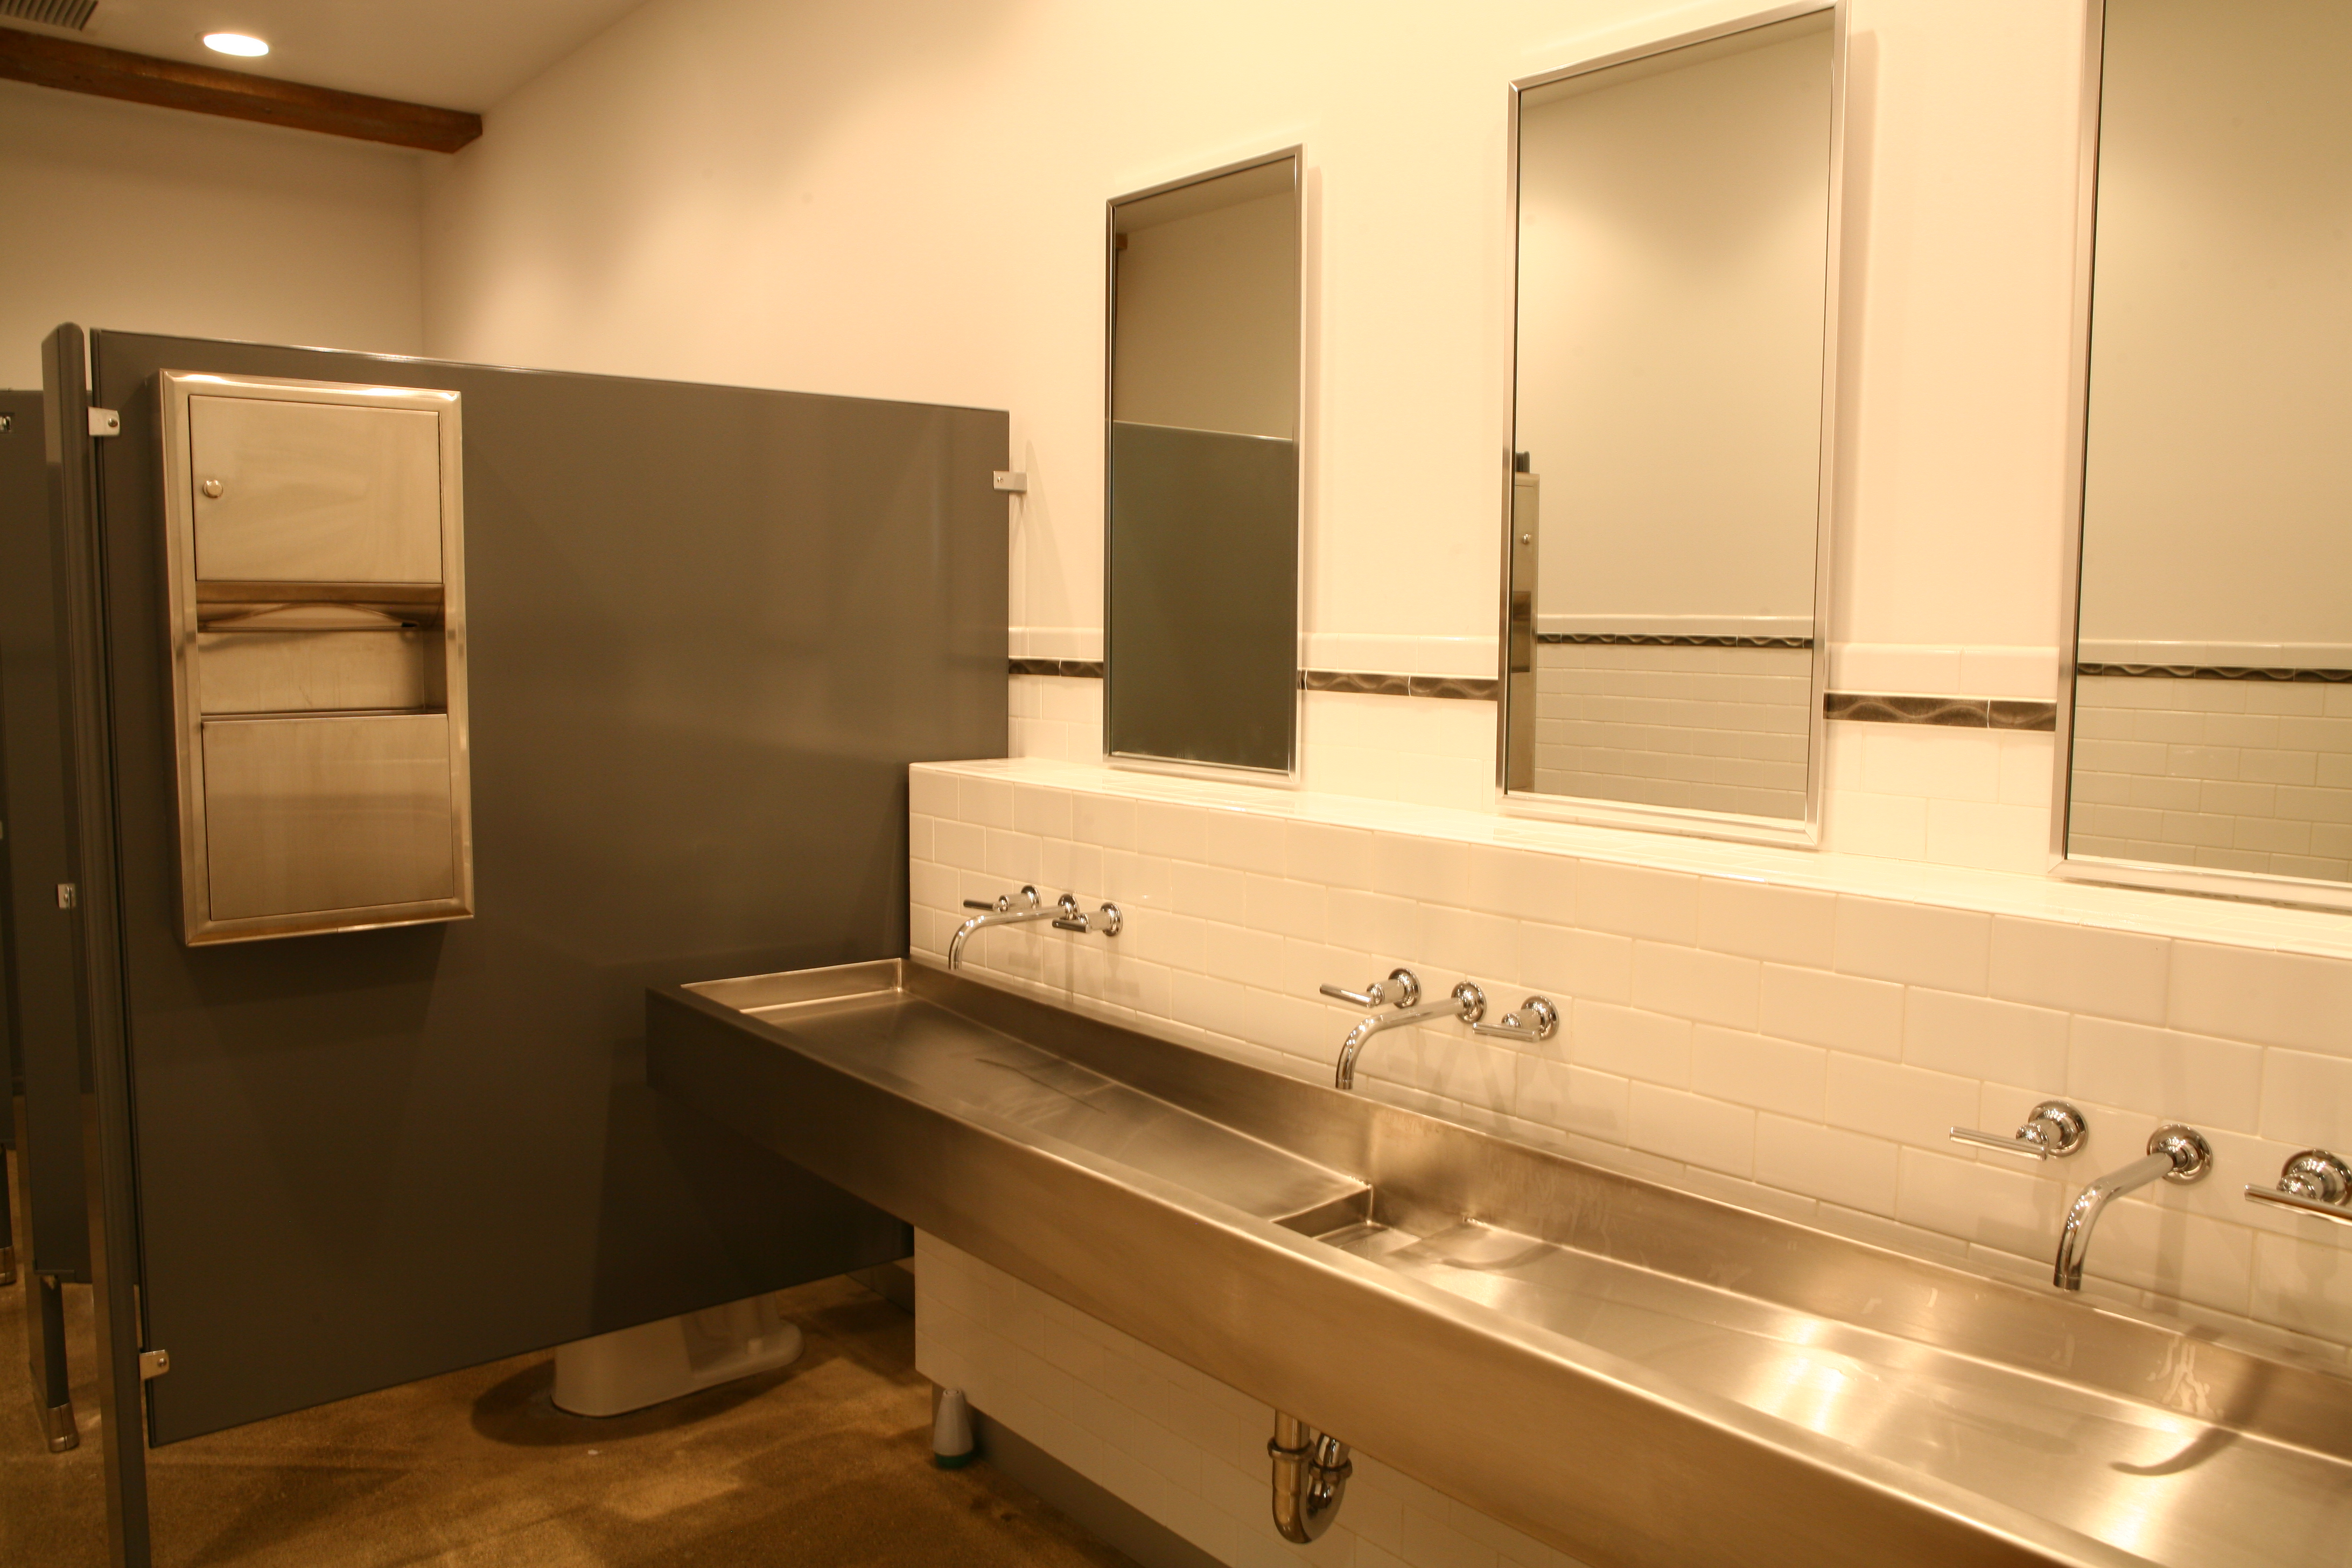 Bathrooms John M Reimnitz Architect Pc Jrapc